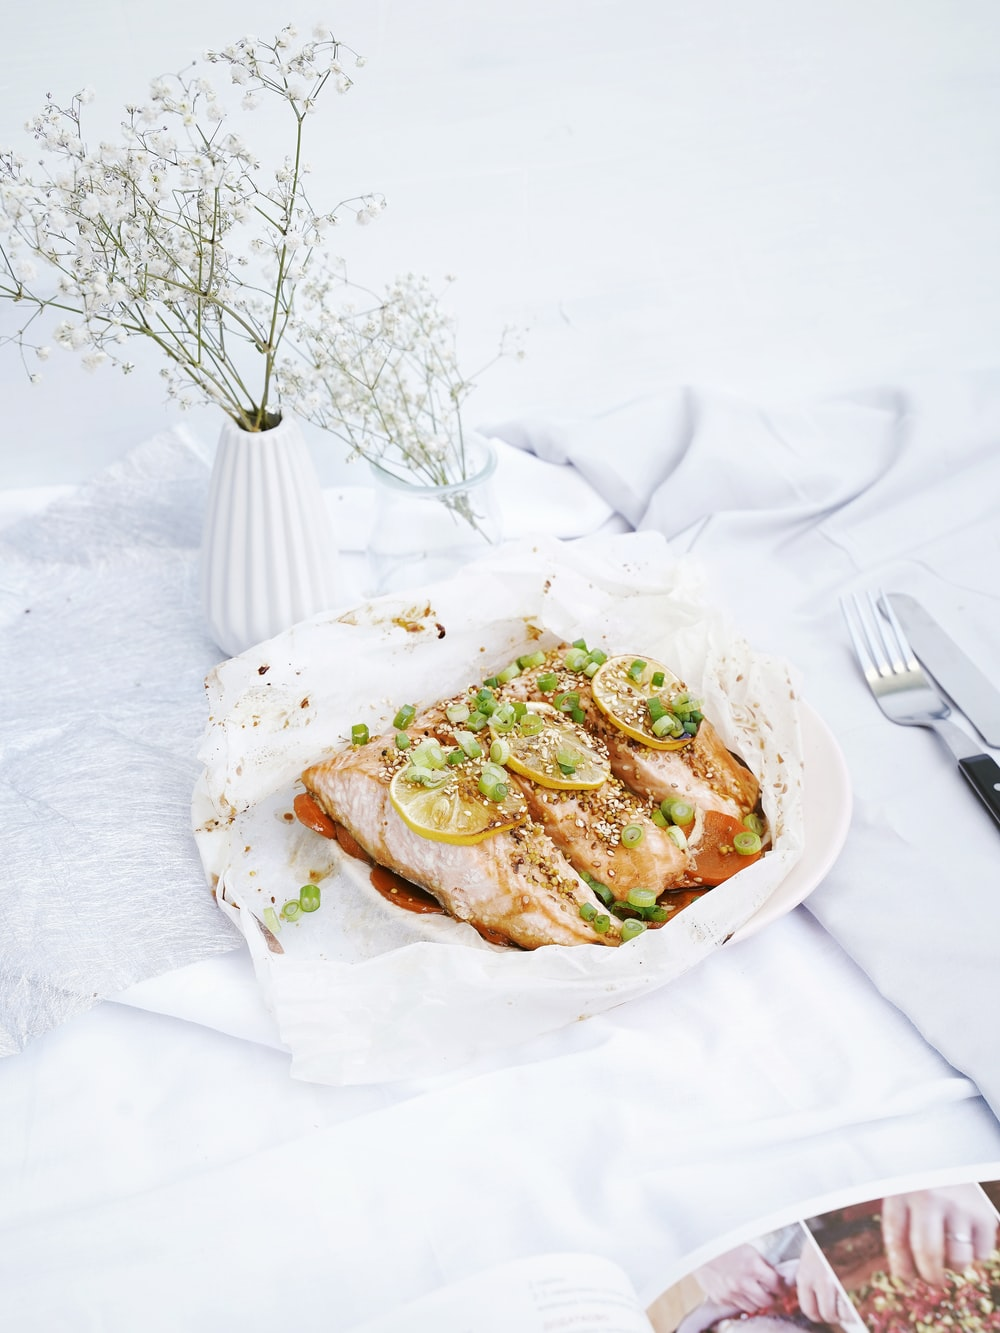 meat dish on white plate